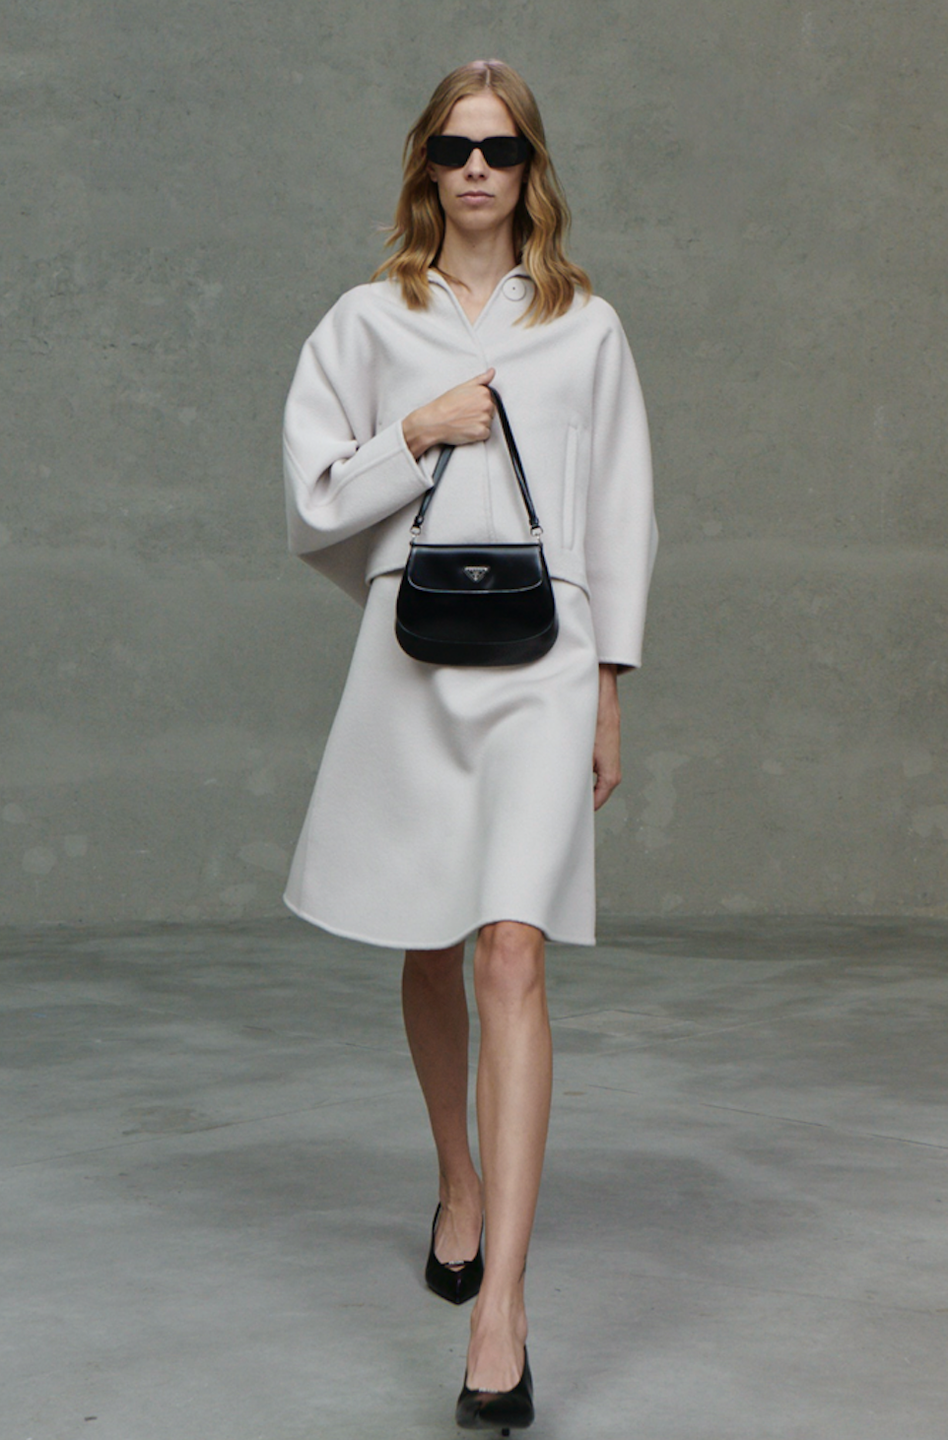 """<p>Prada's resort 2021 collection was presented in five different videos, each one created by individuals (Terence Nance, Joanna Piotrowska, Martine Syms, Juergen Teller, and Willy Vanderperre) with various perspectives on the collection. """"This is an embracing and celebration of that multiplicity—when people cannot commune, we can establish a different type of community, united through ideas, goals, beliefs,"""" said the fashion house in a statement. The clothing itself in this collection were pared down and unostentatious.</p>"""